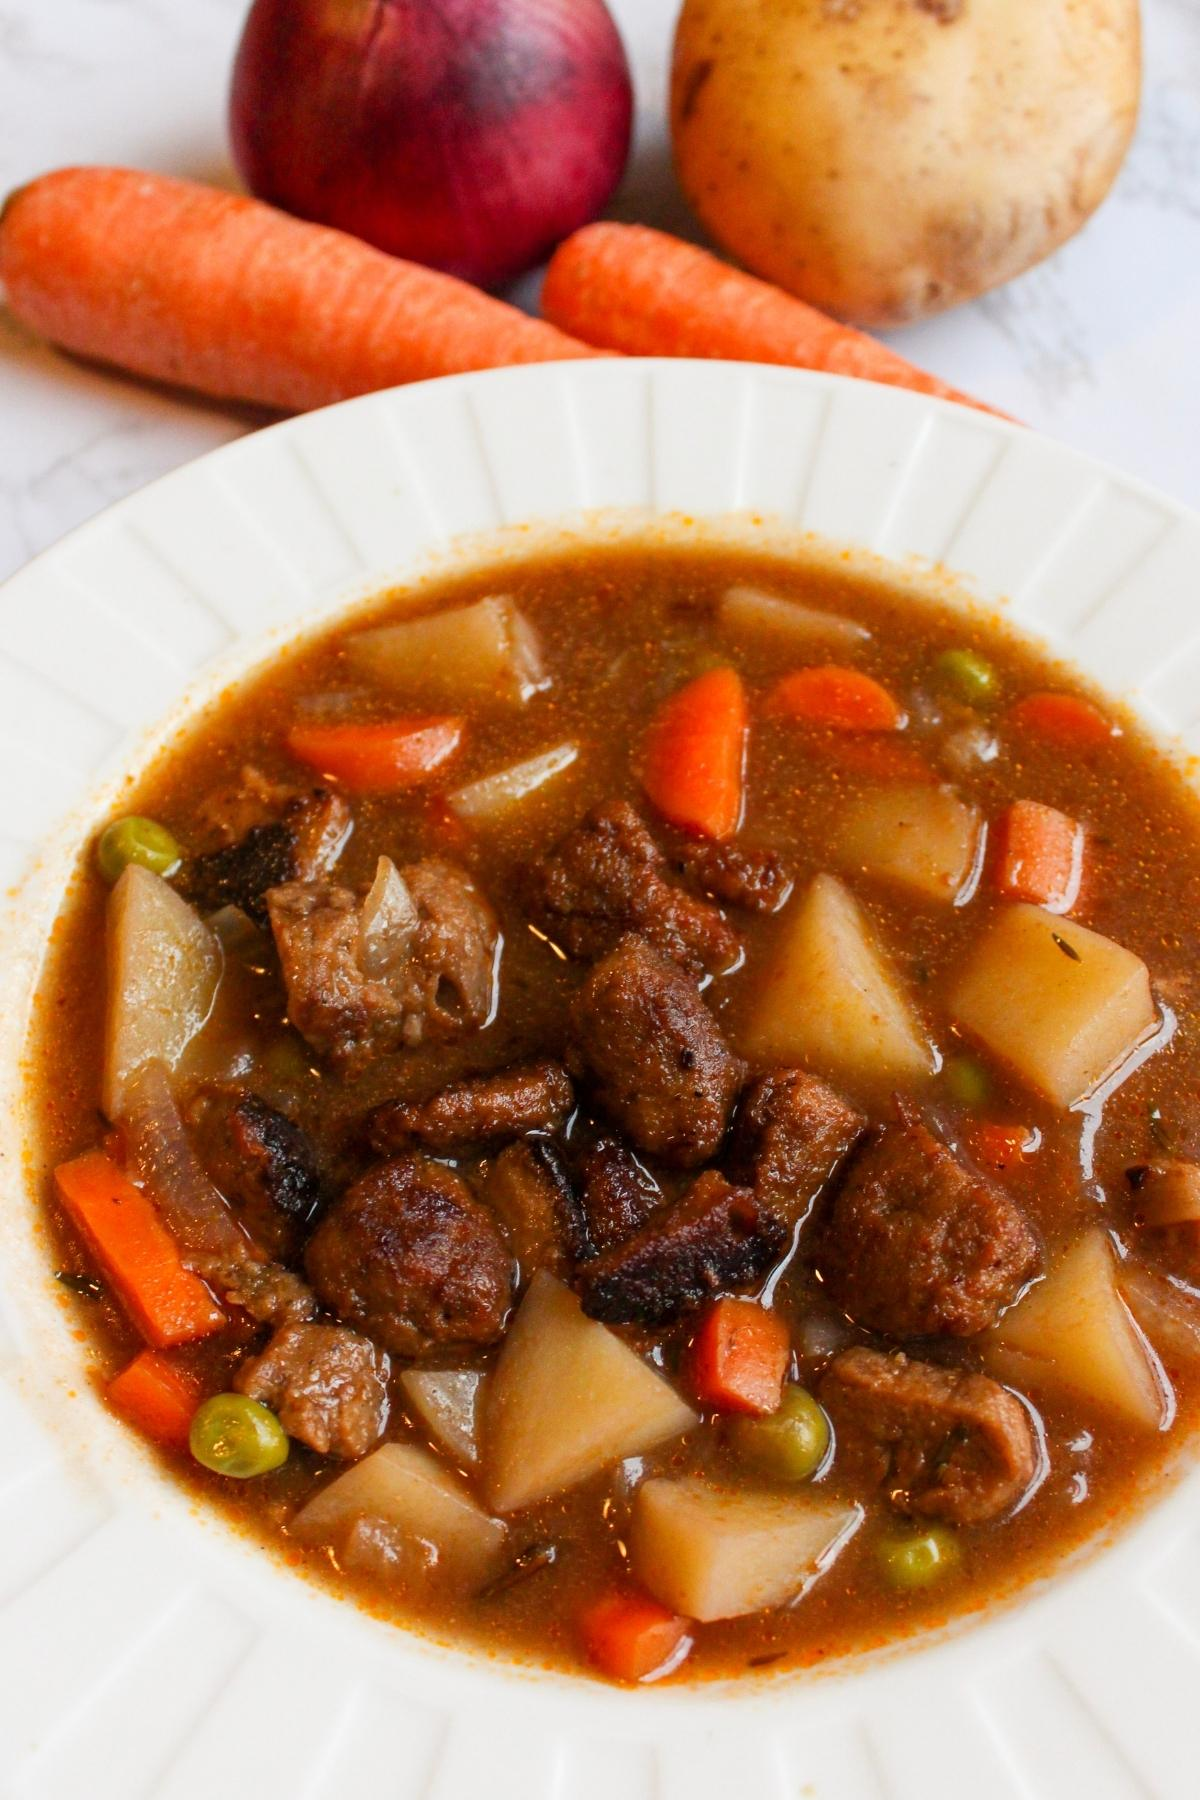 Close up of vegan beef stew in a bowl.